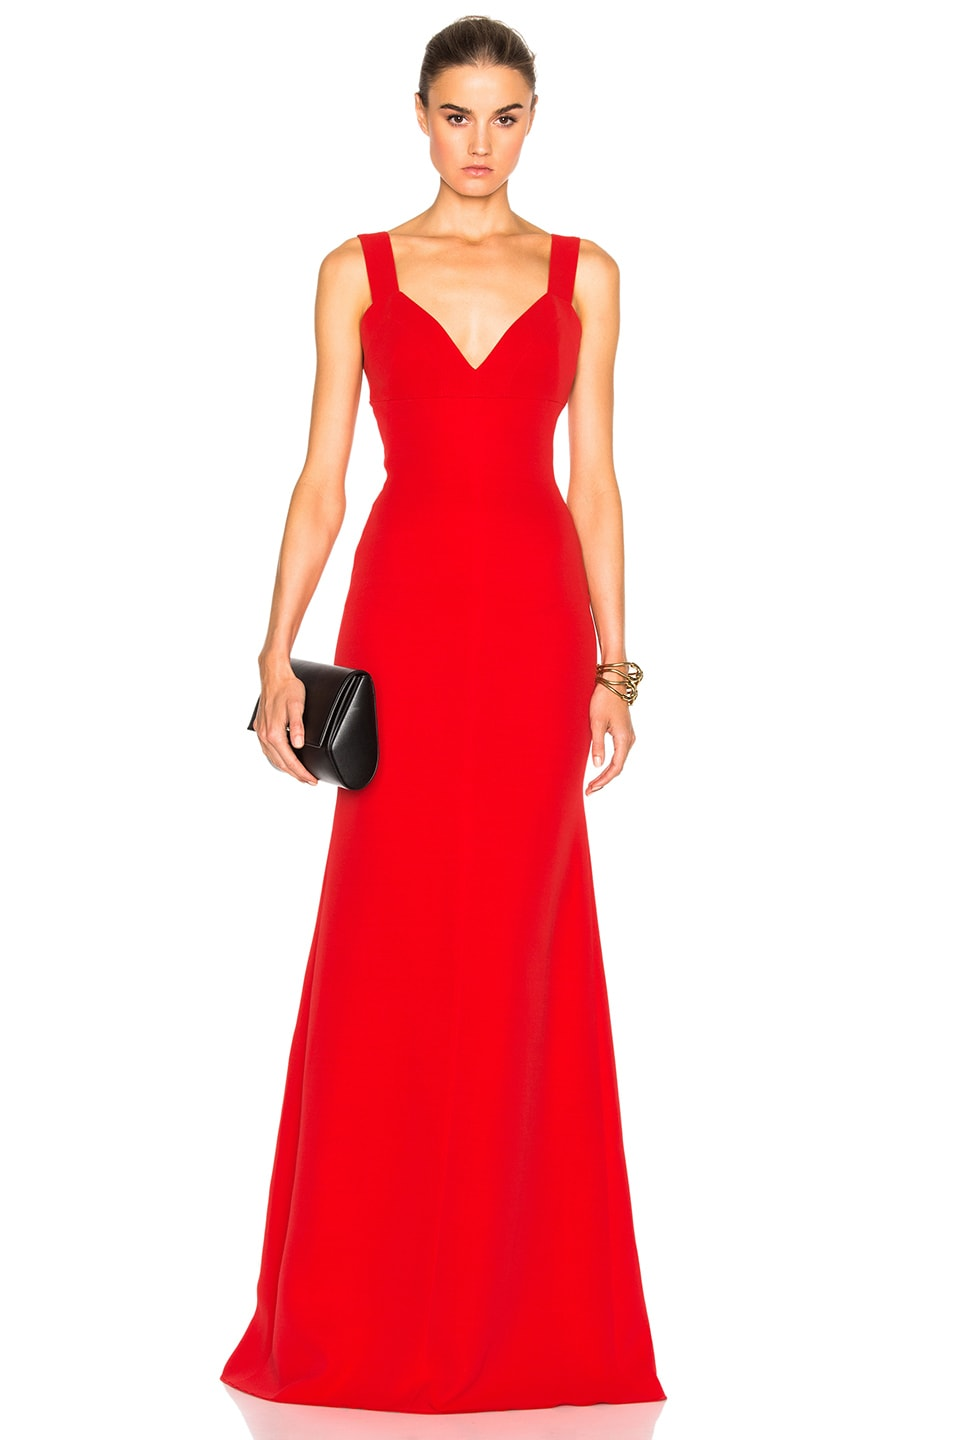 Victoria Beckham Double Crepe Camisole Floor Length Dress in Red